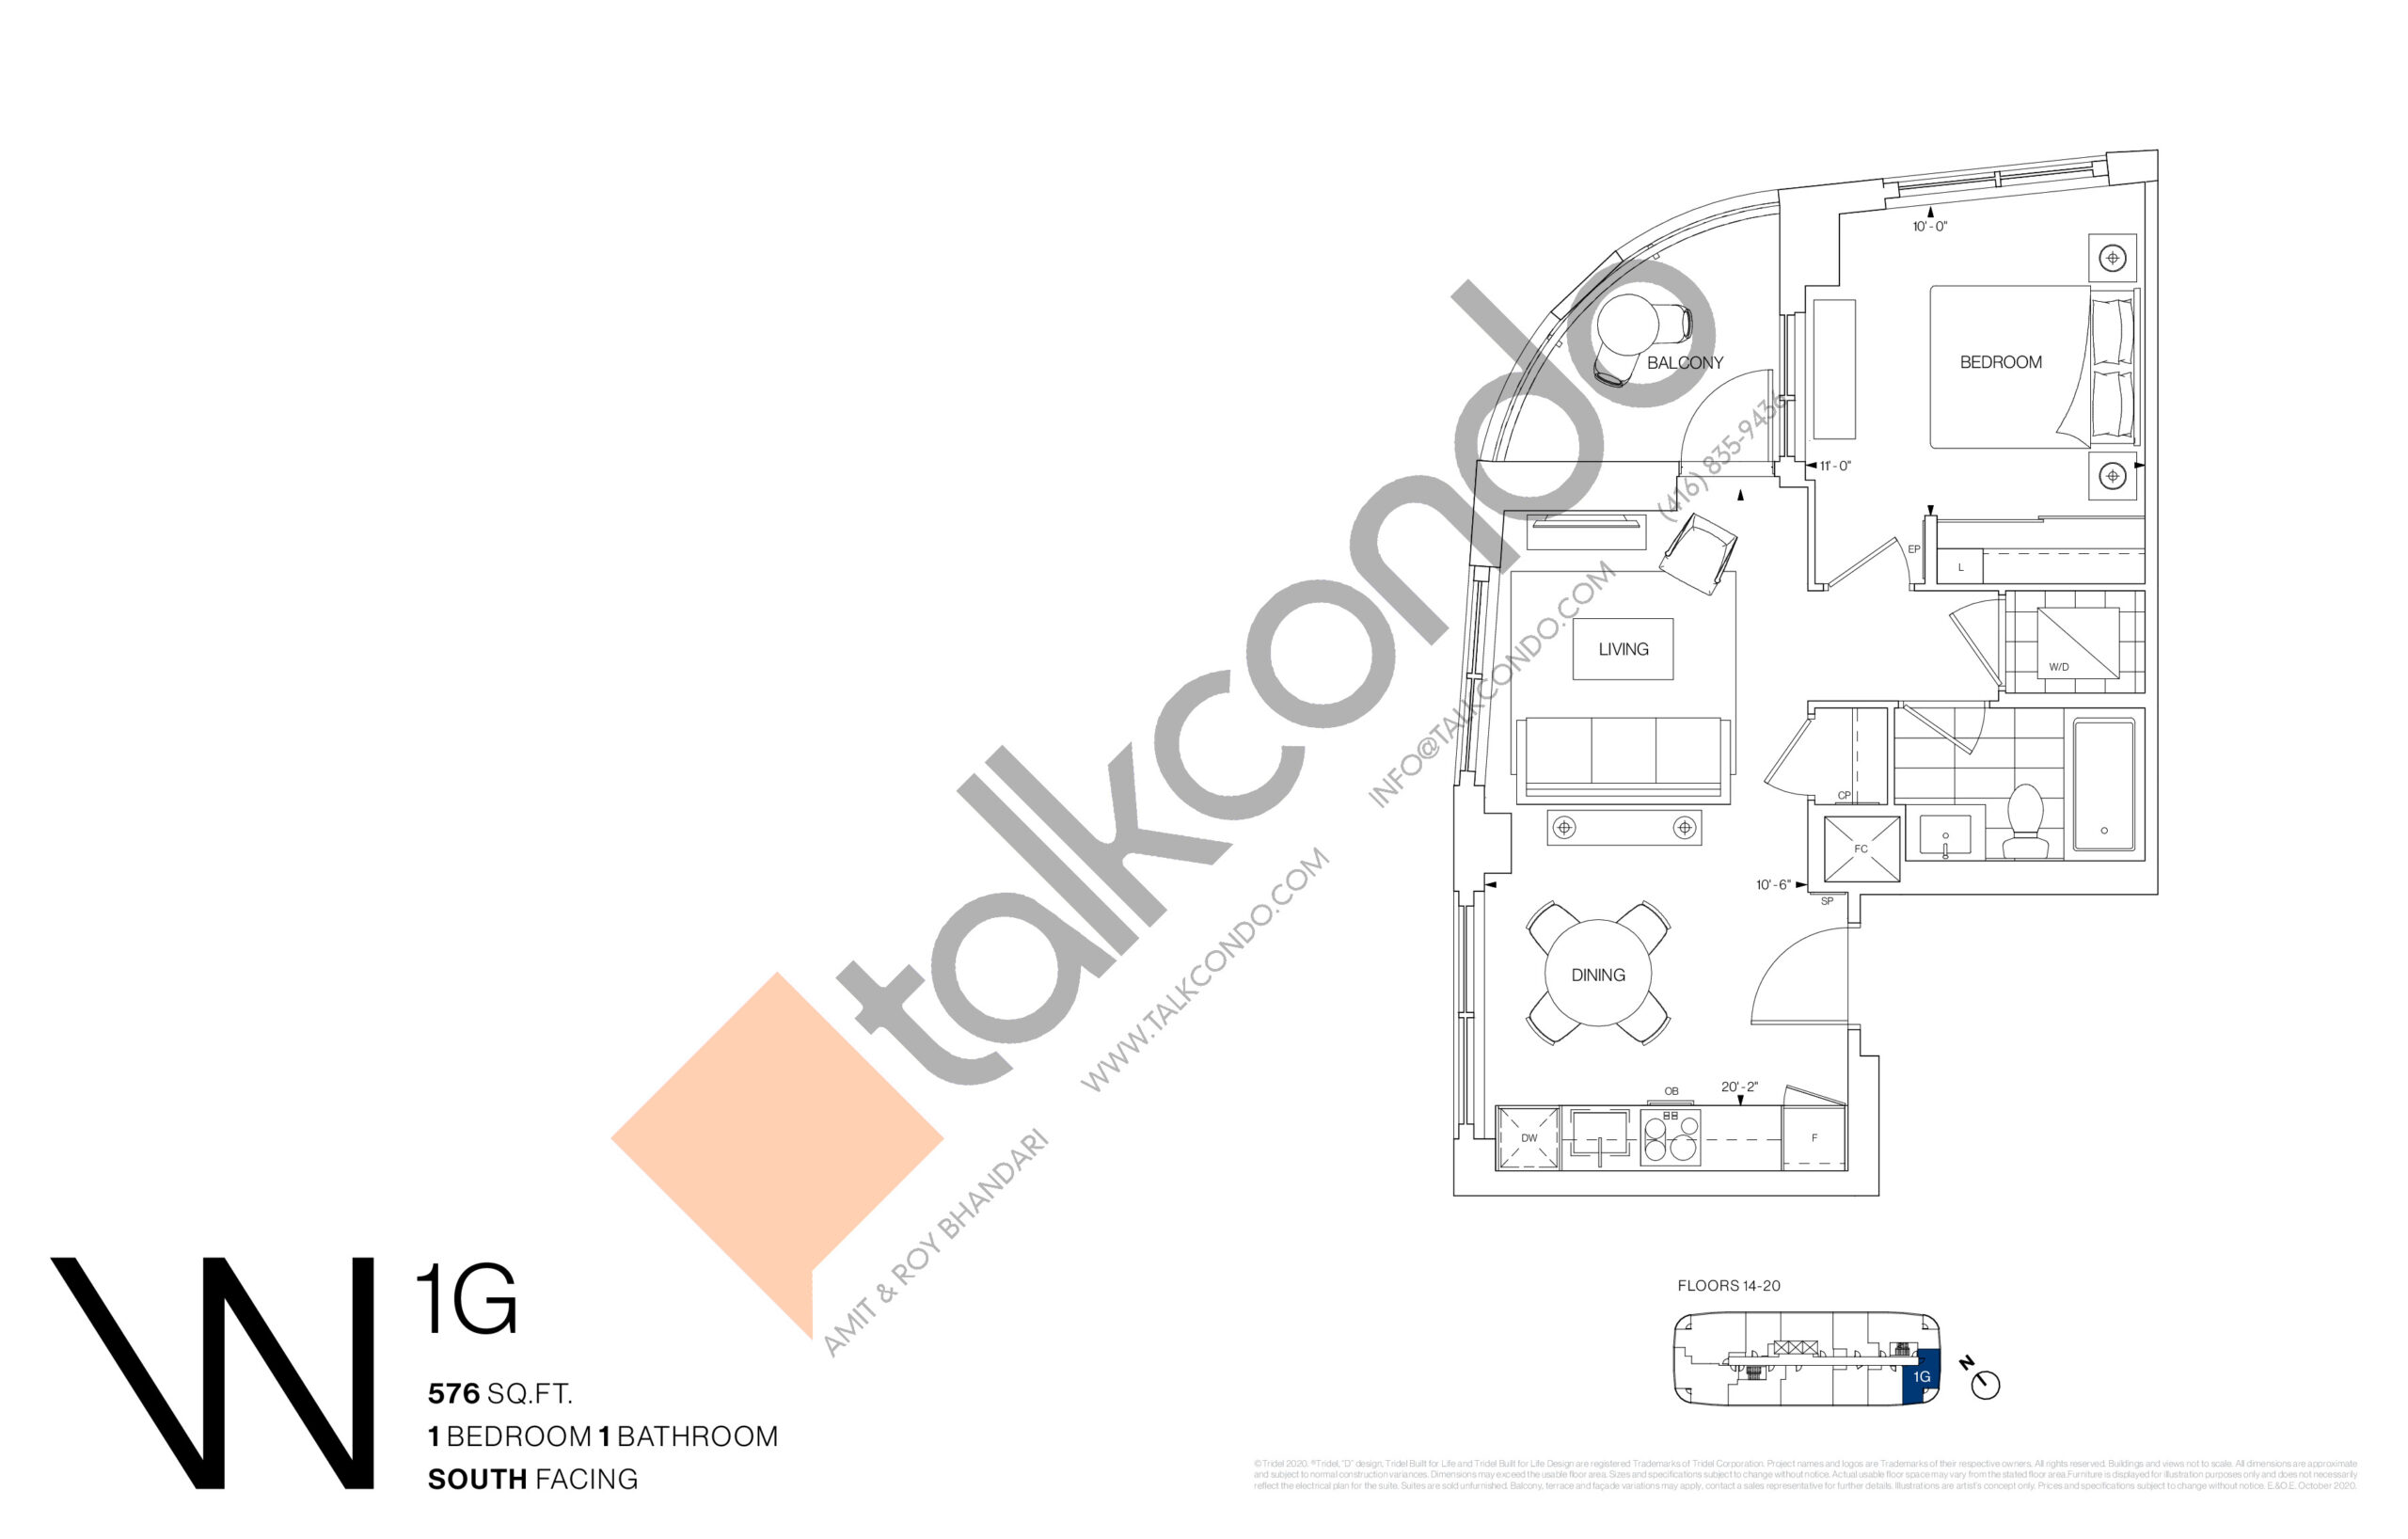 1G Floor Plan at Westerly Condos - 576 sq.ft